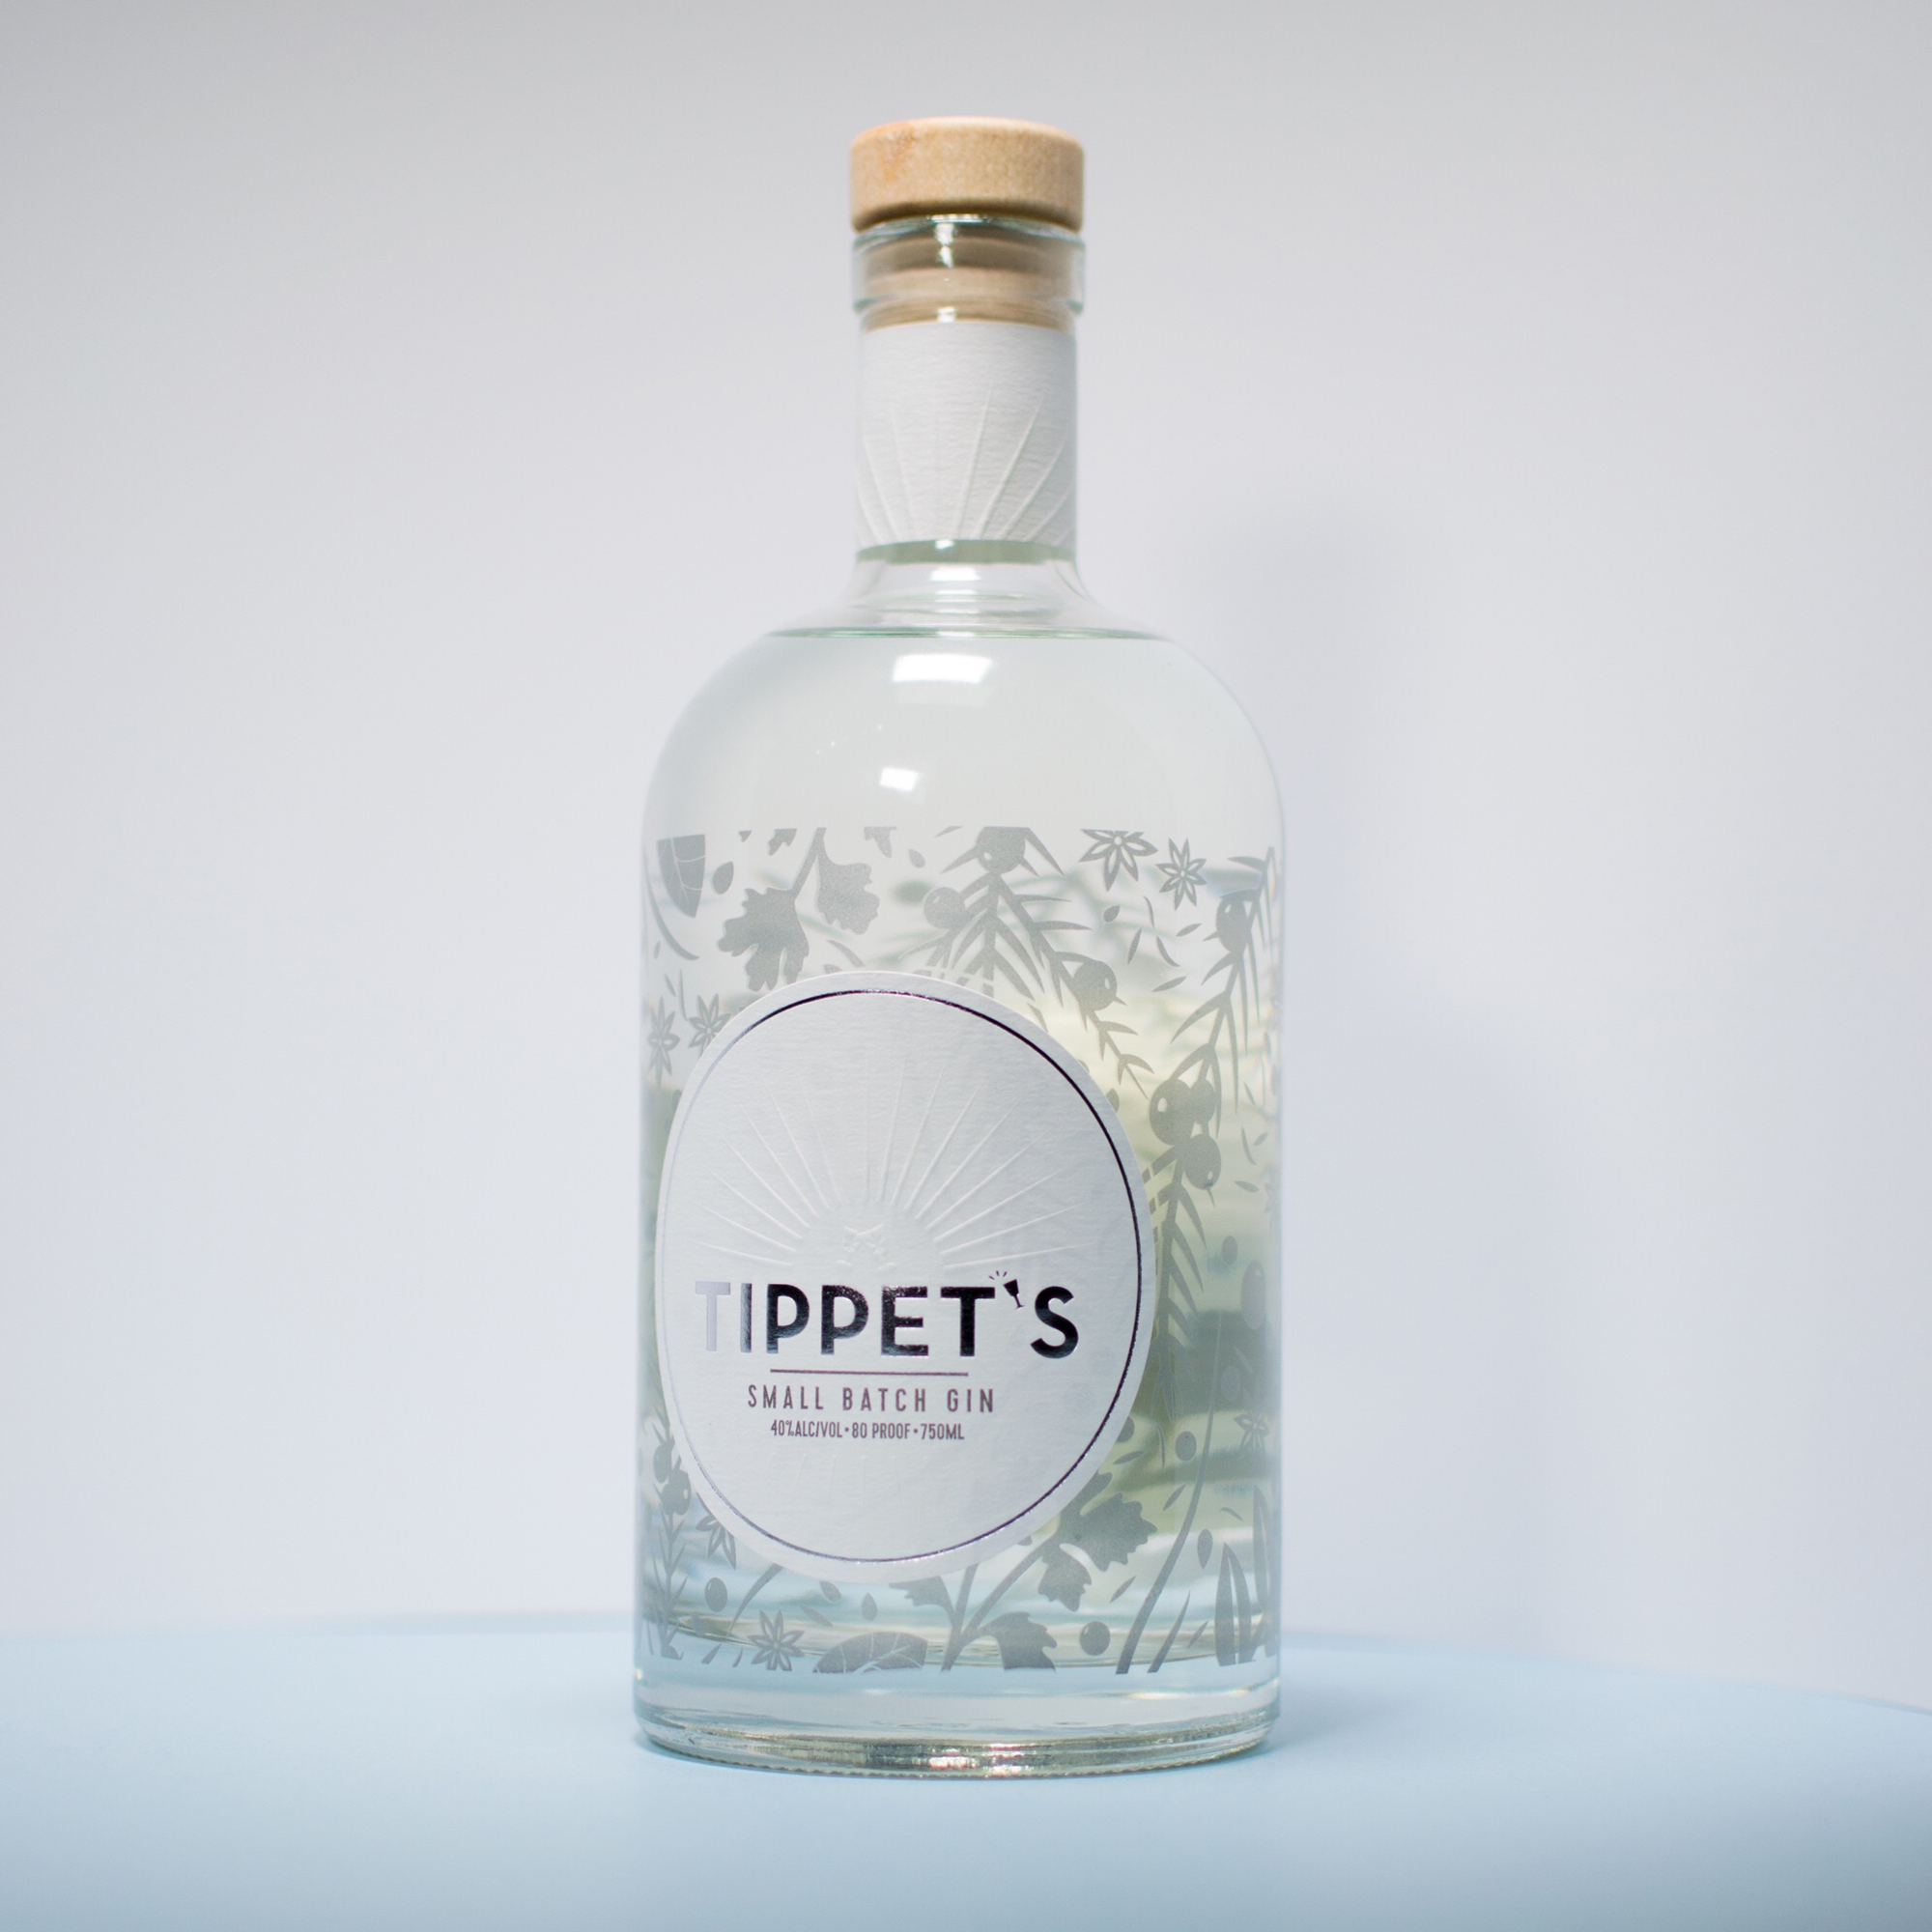 Tippet'ssmall batch gin - Click here for more details